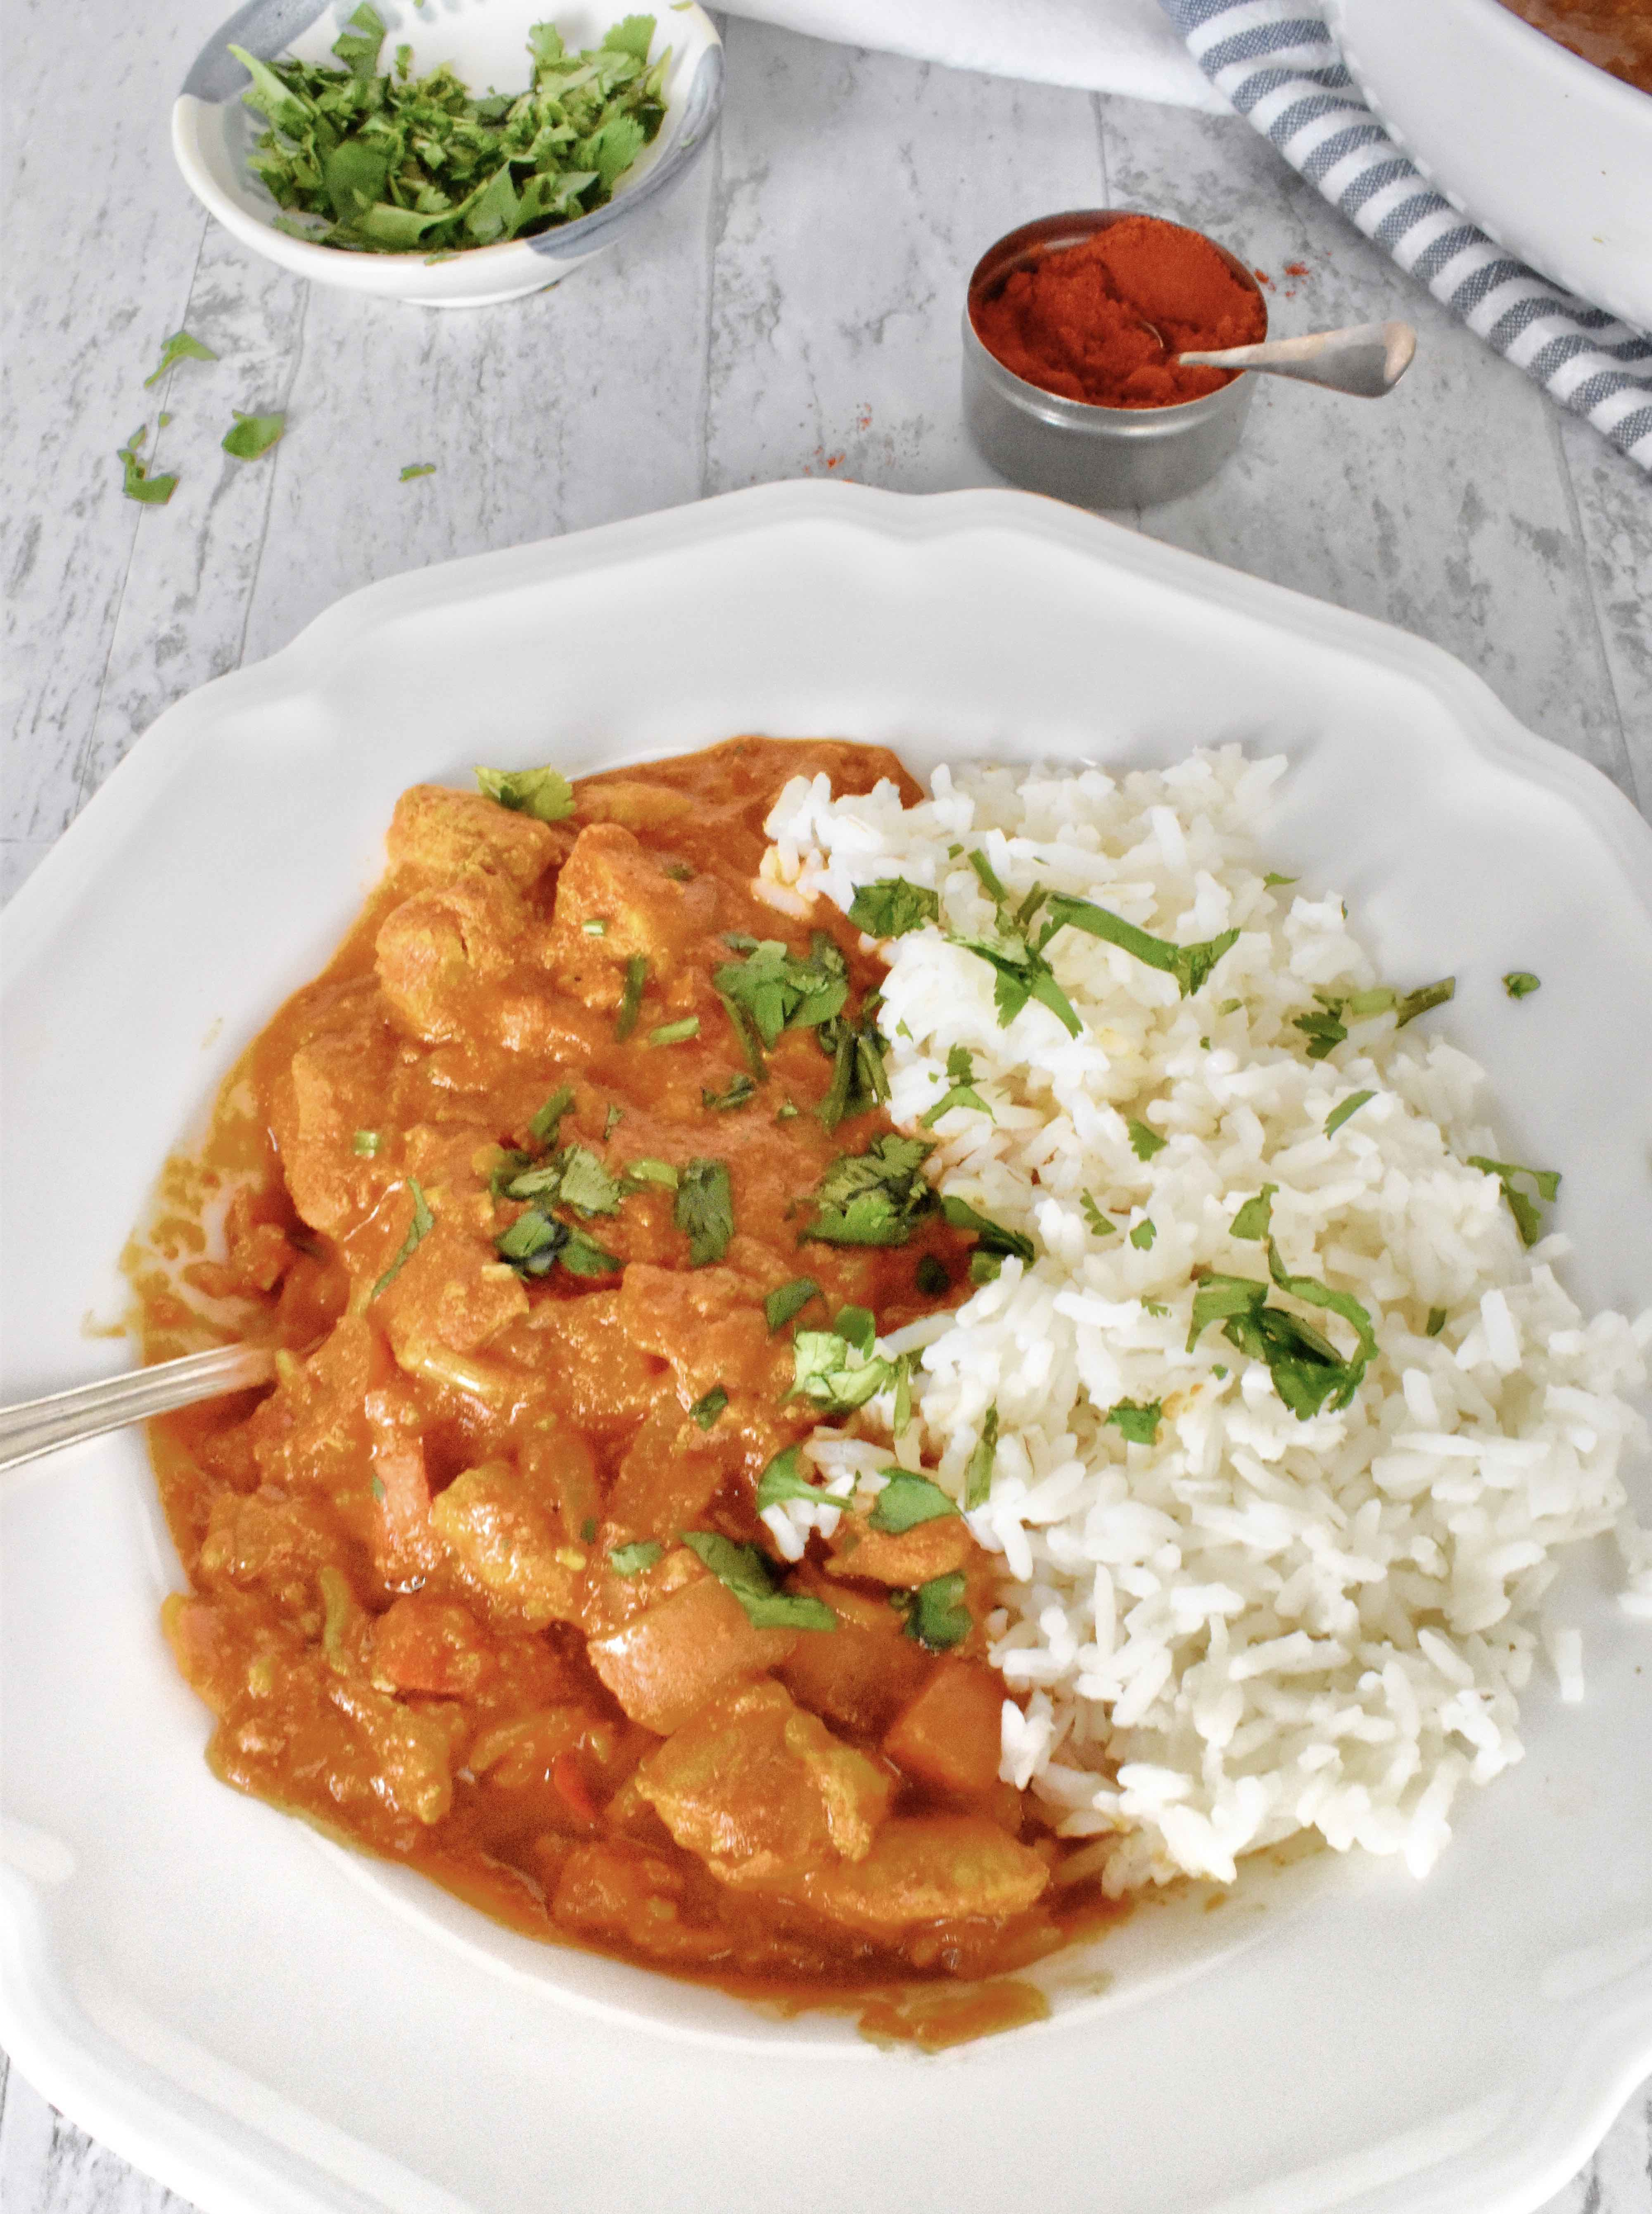 Chicken tikka masala in bowl with rice and cilantro garnish